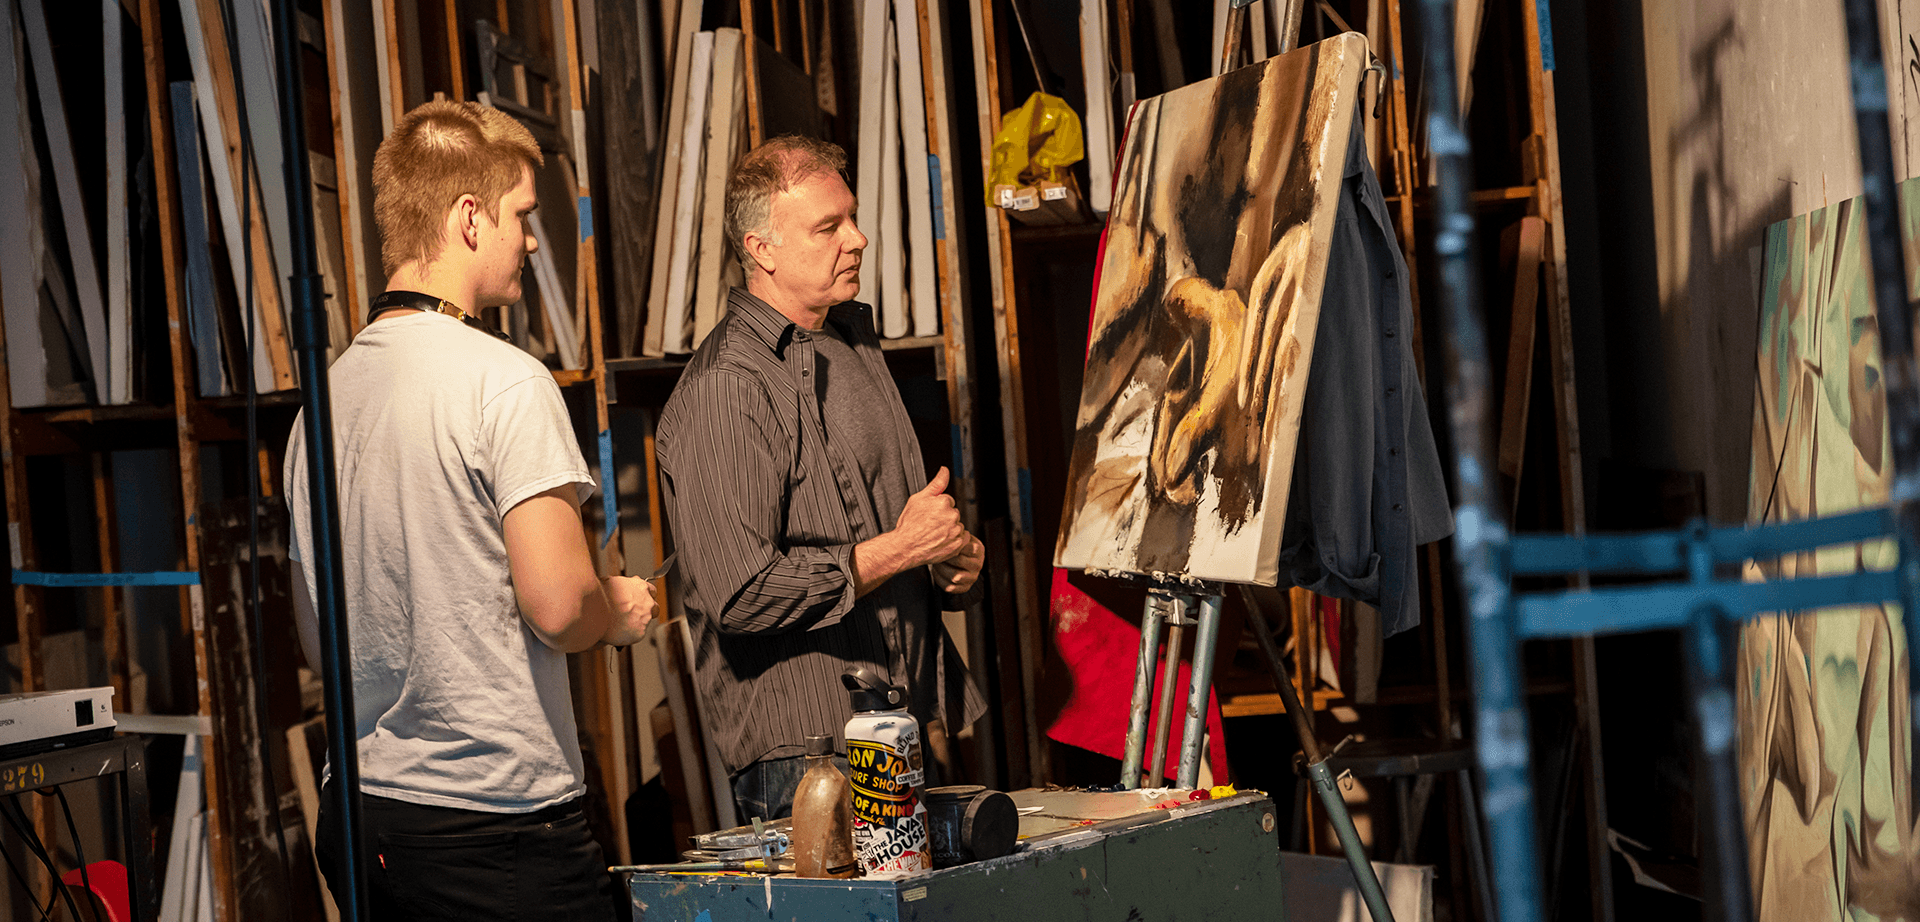 student and instructor inspecting a painting on easel